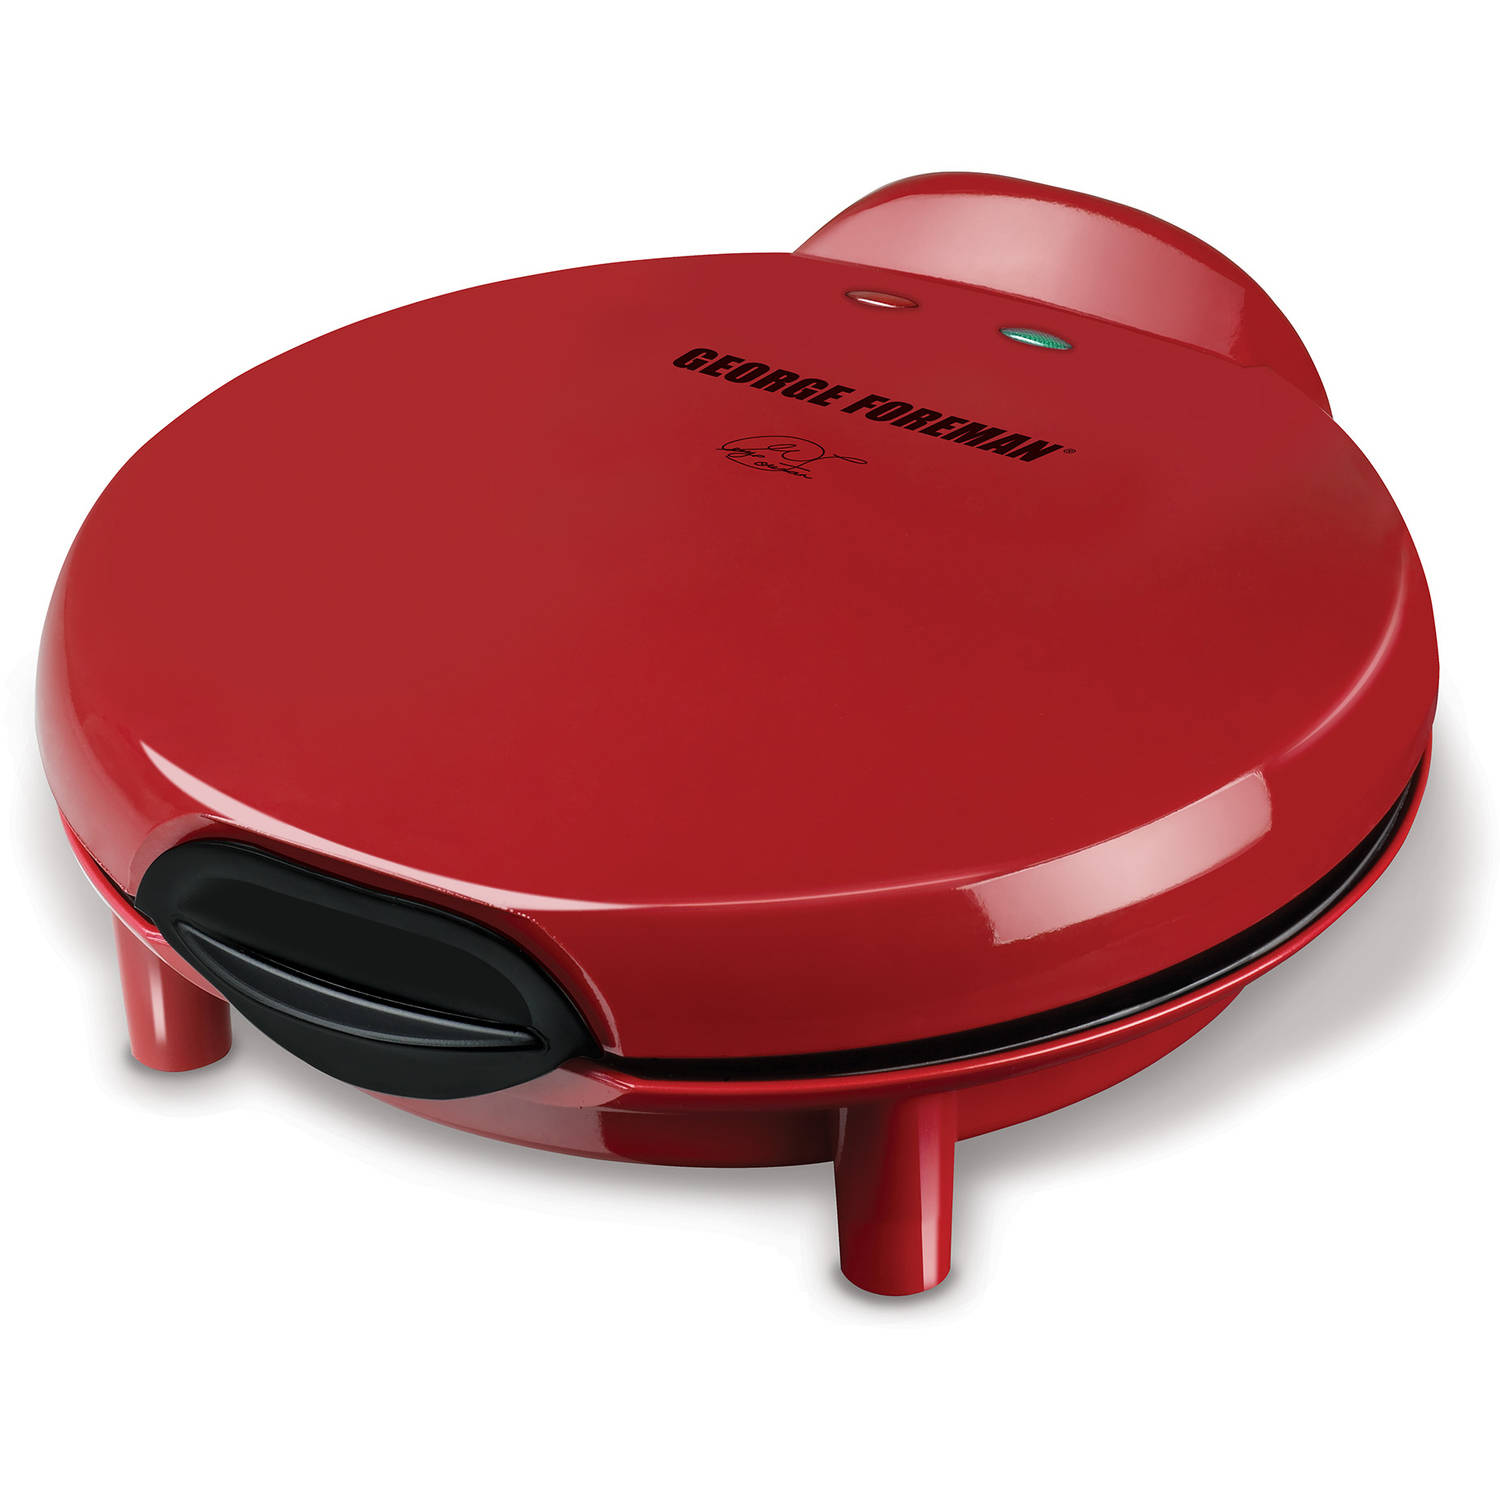 George Foreman Quesadilla Maker, GFQ001